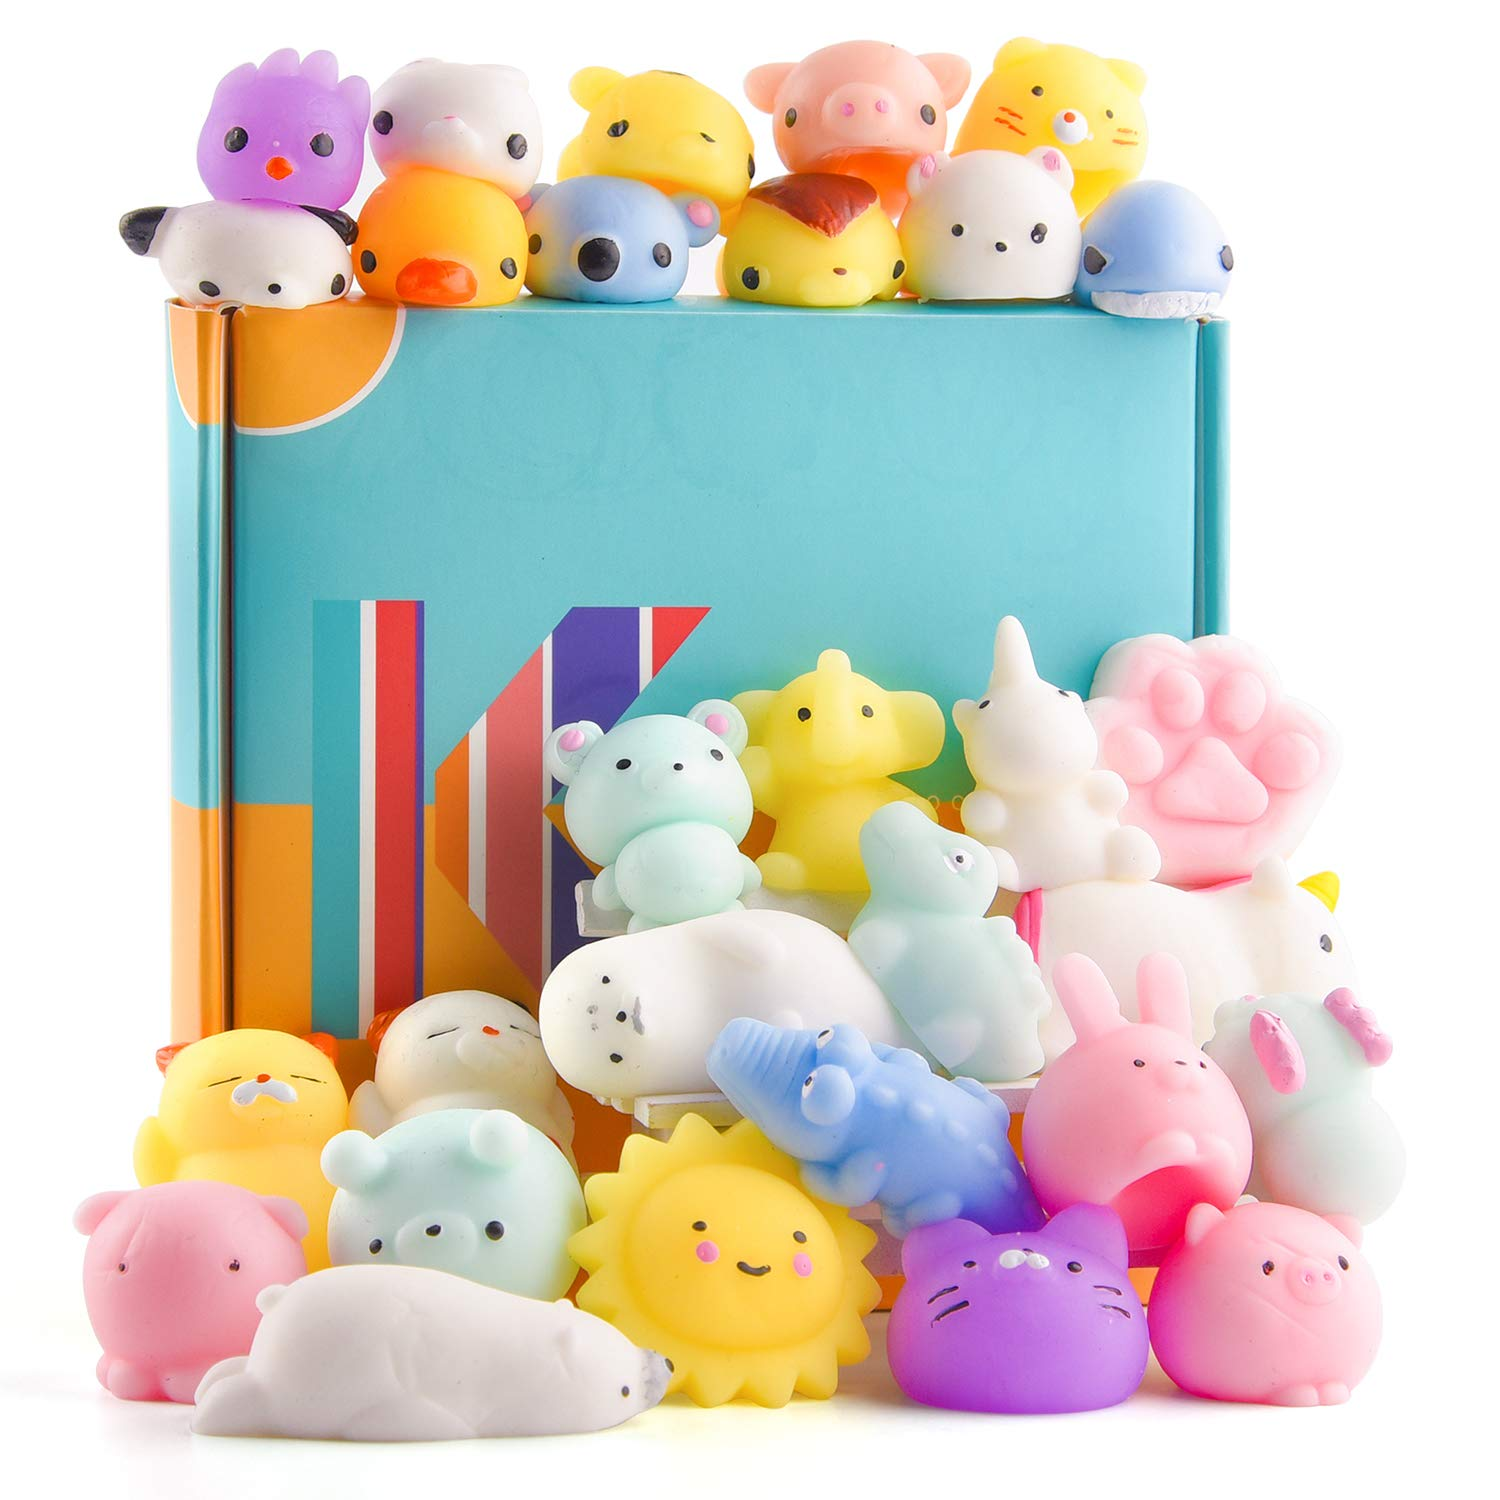 KUUQA 30 PCS Kawaii Mochi Squishy Toys Squishies Animal Cat Panda Unicorn Mini Soft Squeeze Stress Relief Squishies Balls Toys Cute Birthday Party Favours Bags Gifts for Kids Adults by KUUQA